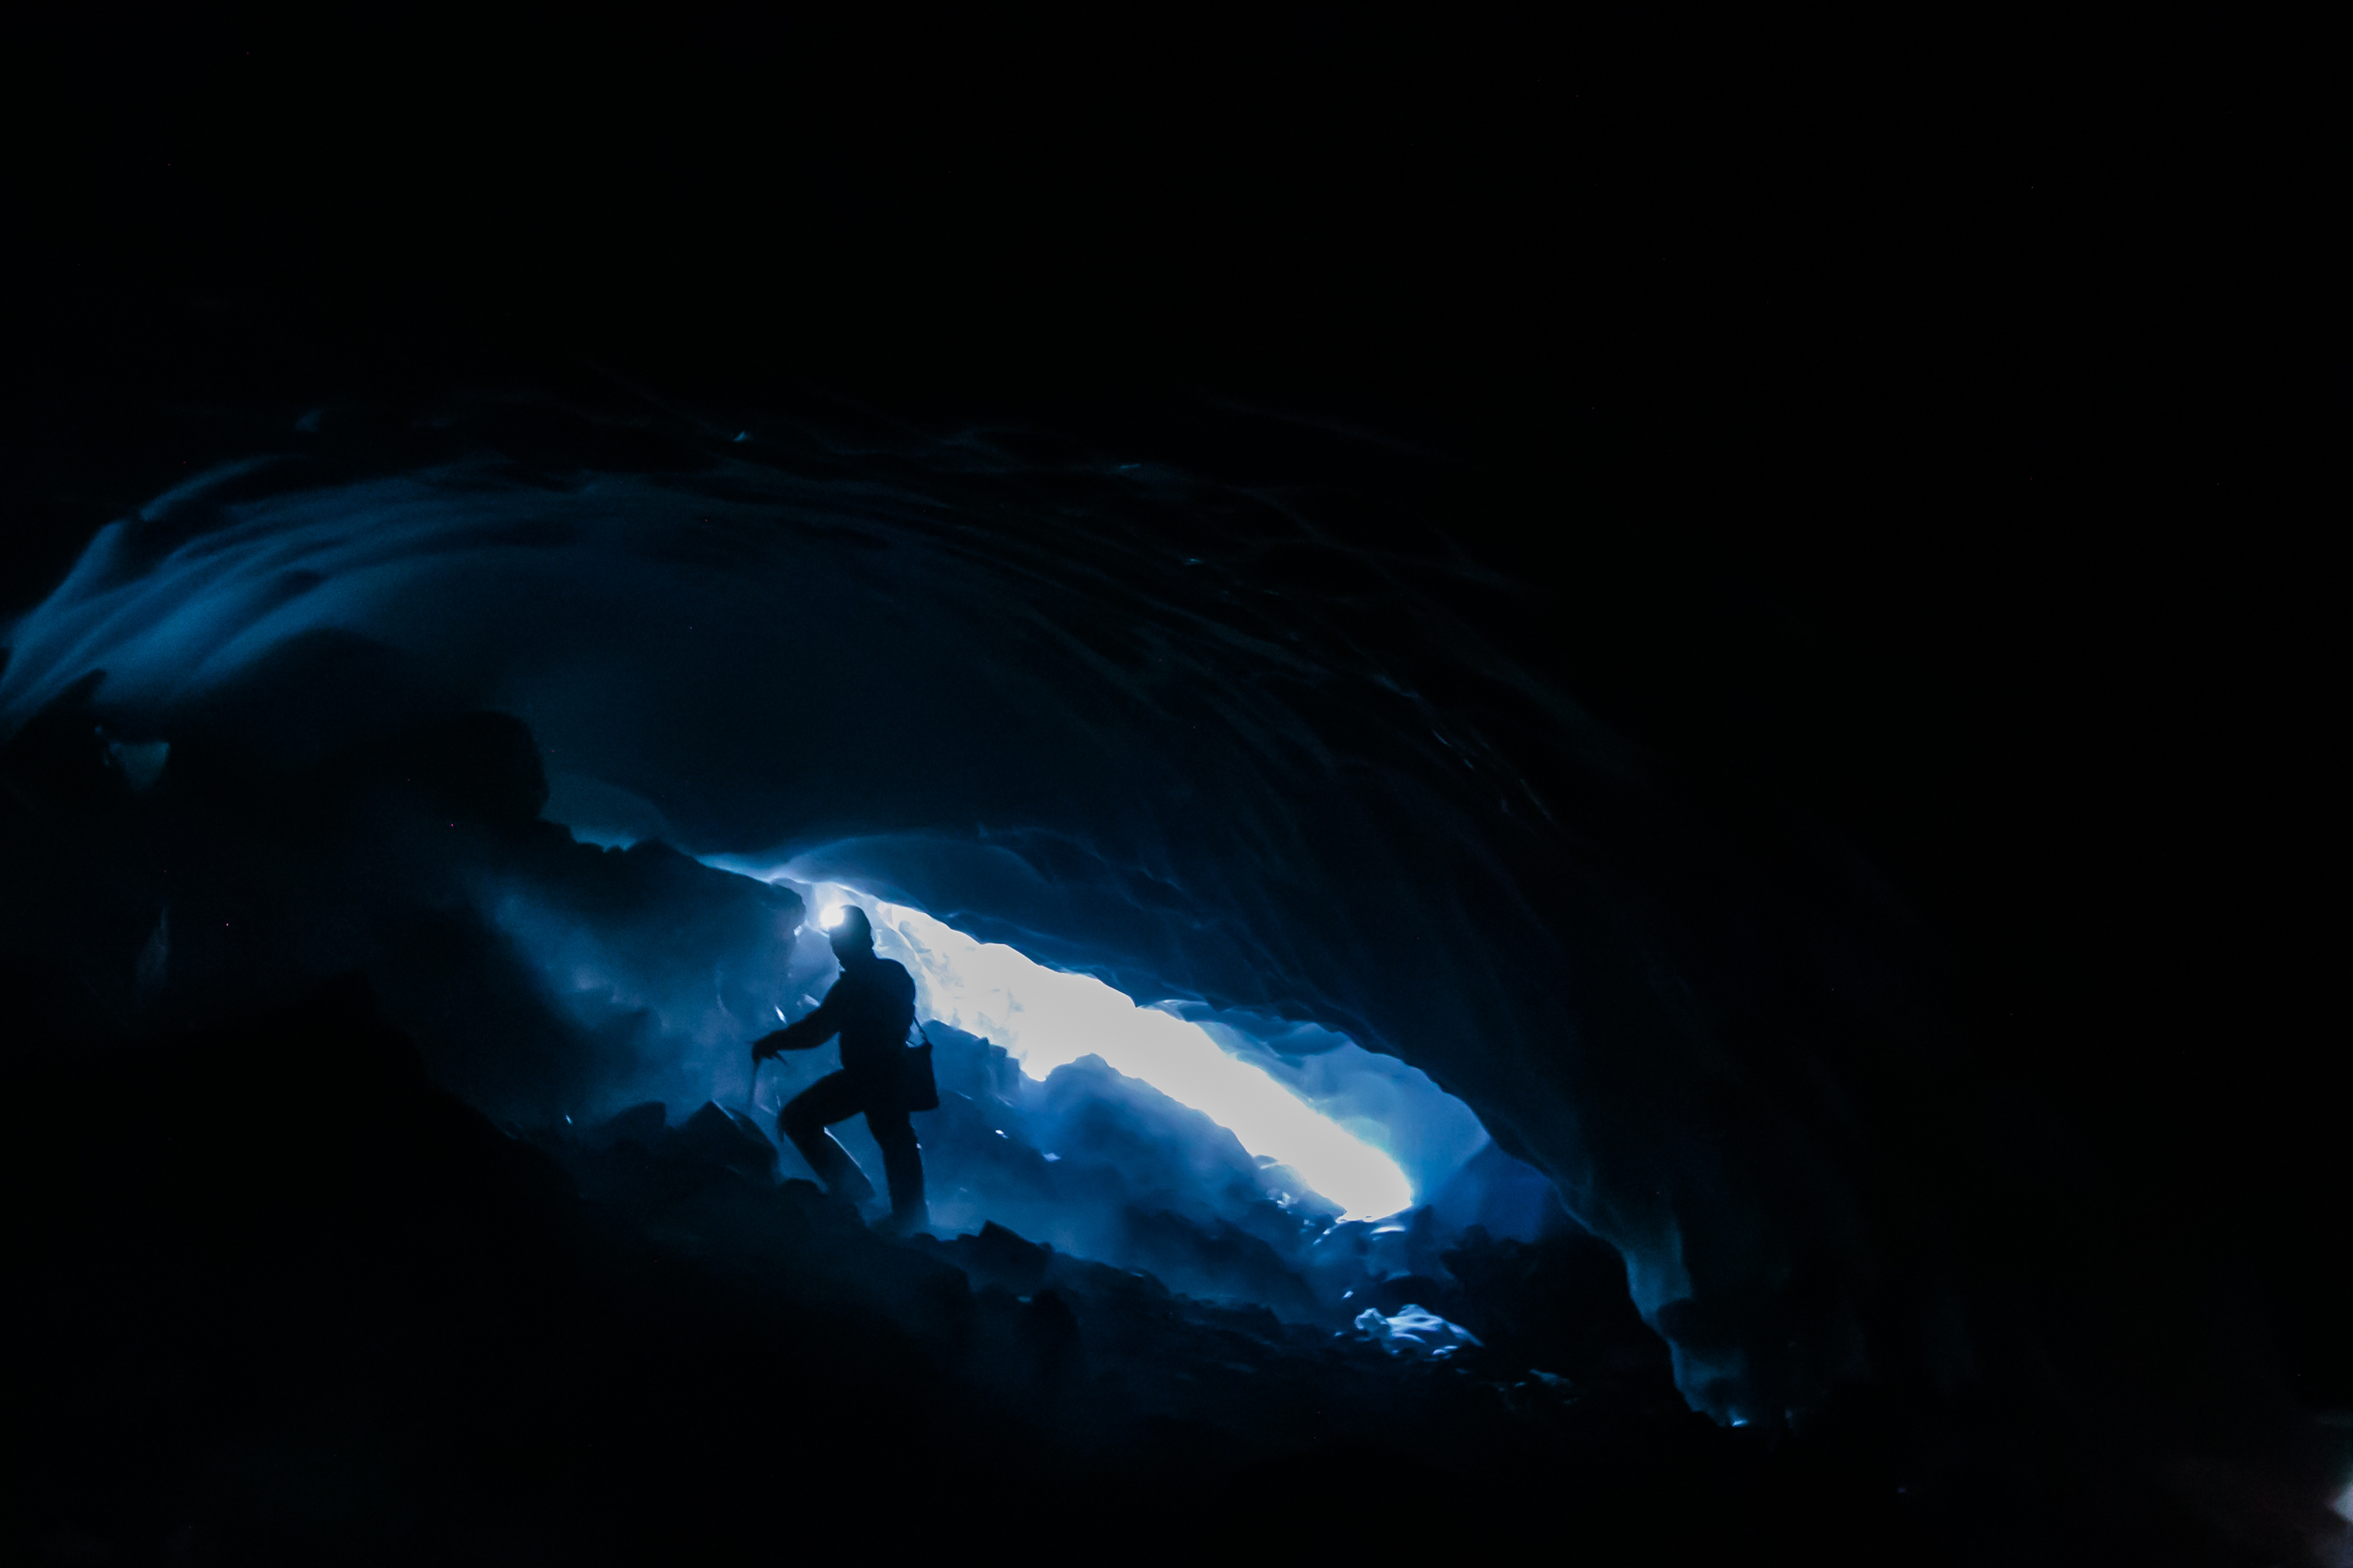 Entering and descending into the cave